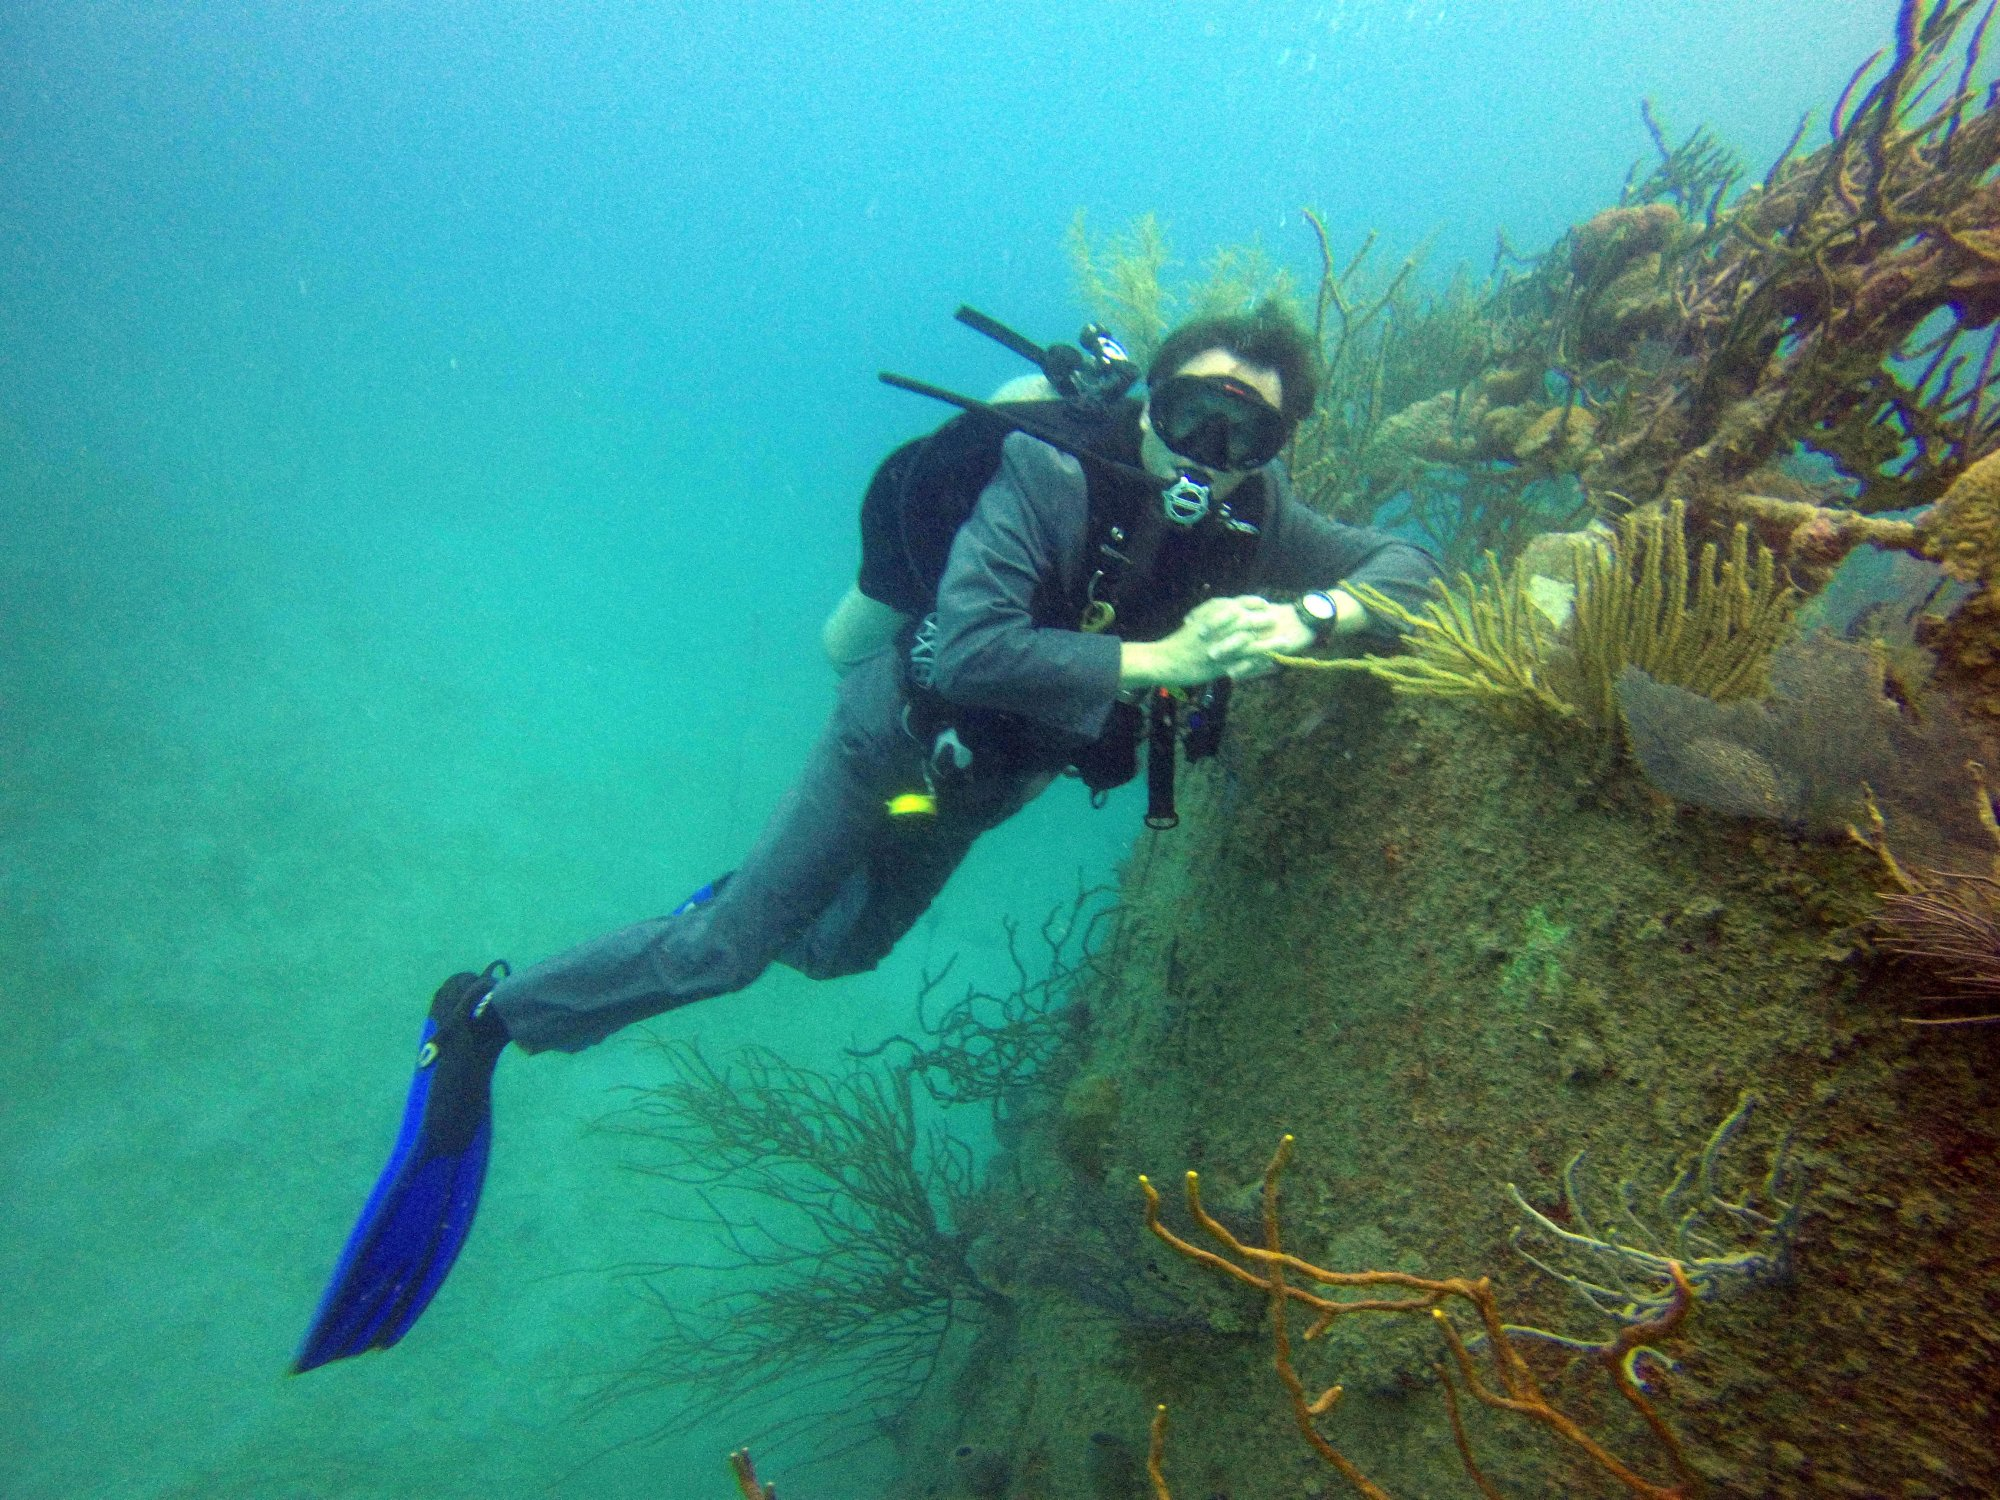 Virginia Scuba is Northern Virginia and Manassas' home for ...